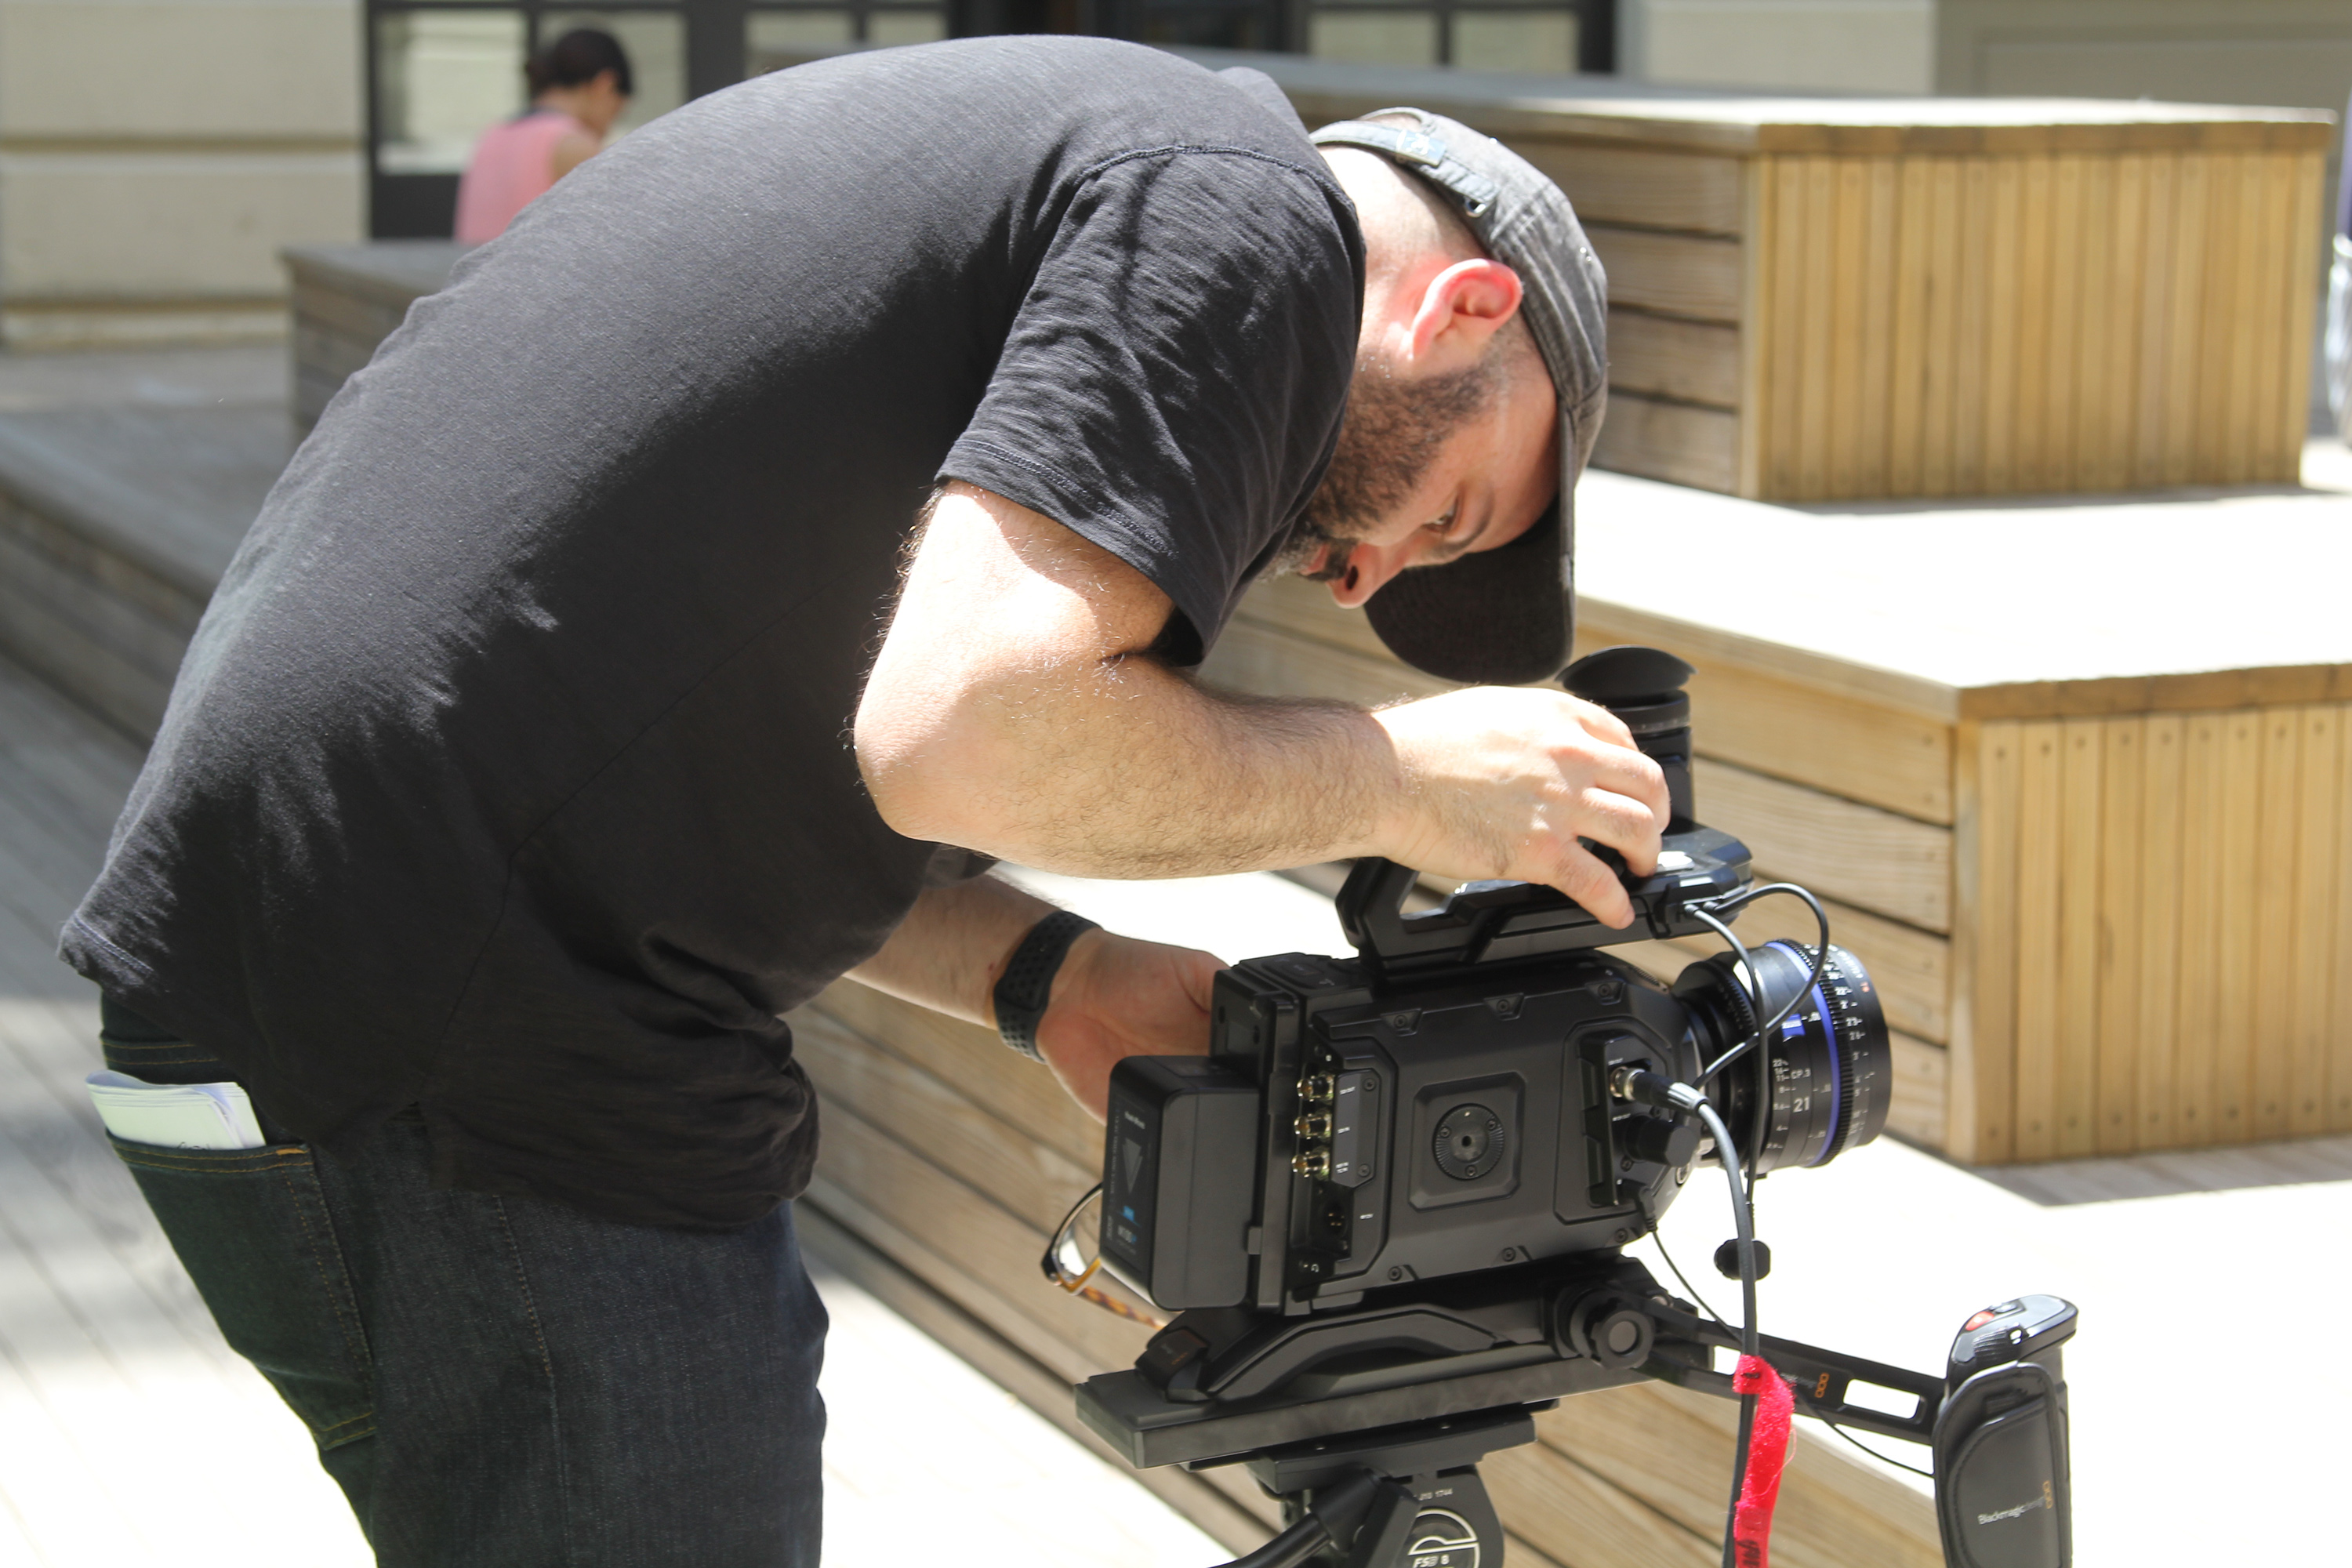 Jem Schofield: Blackmagic Design URSA Mini Pro 4.6K